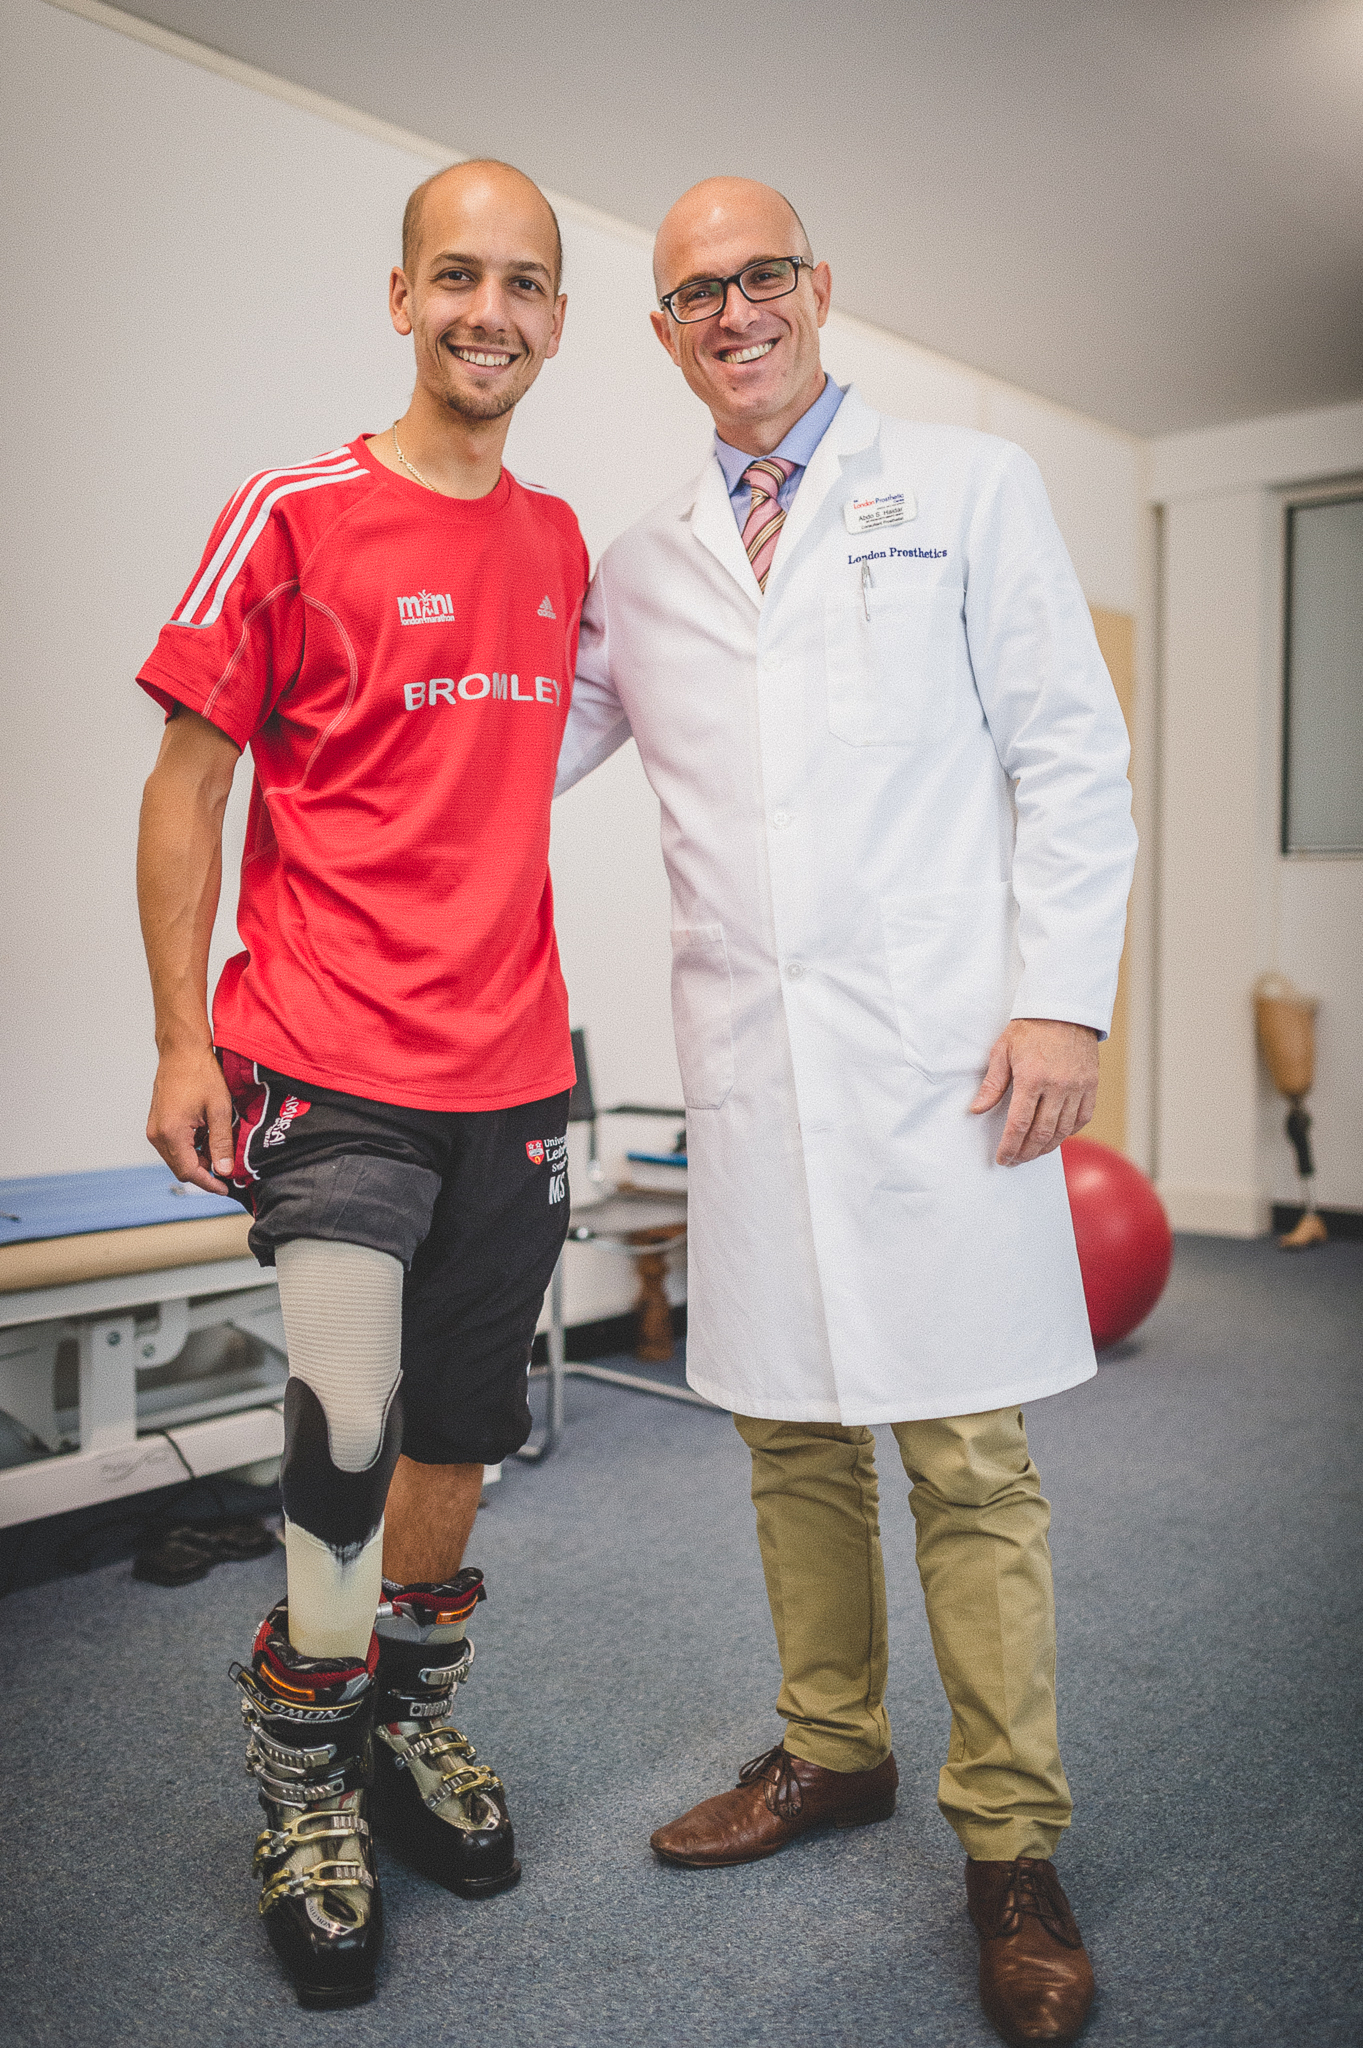 Specialised prosthetic skiing leg to see amputee embark on Paralympic dream